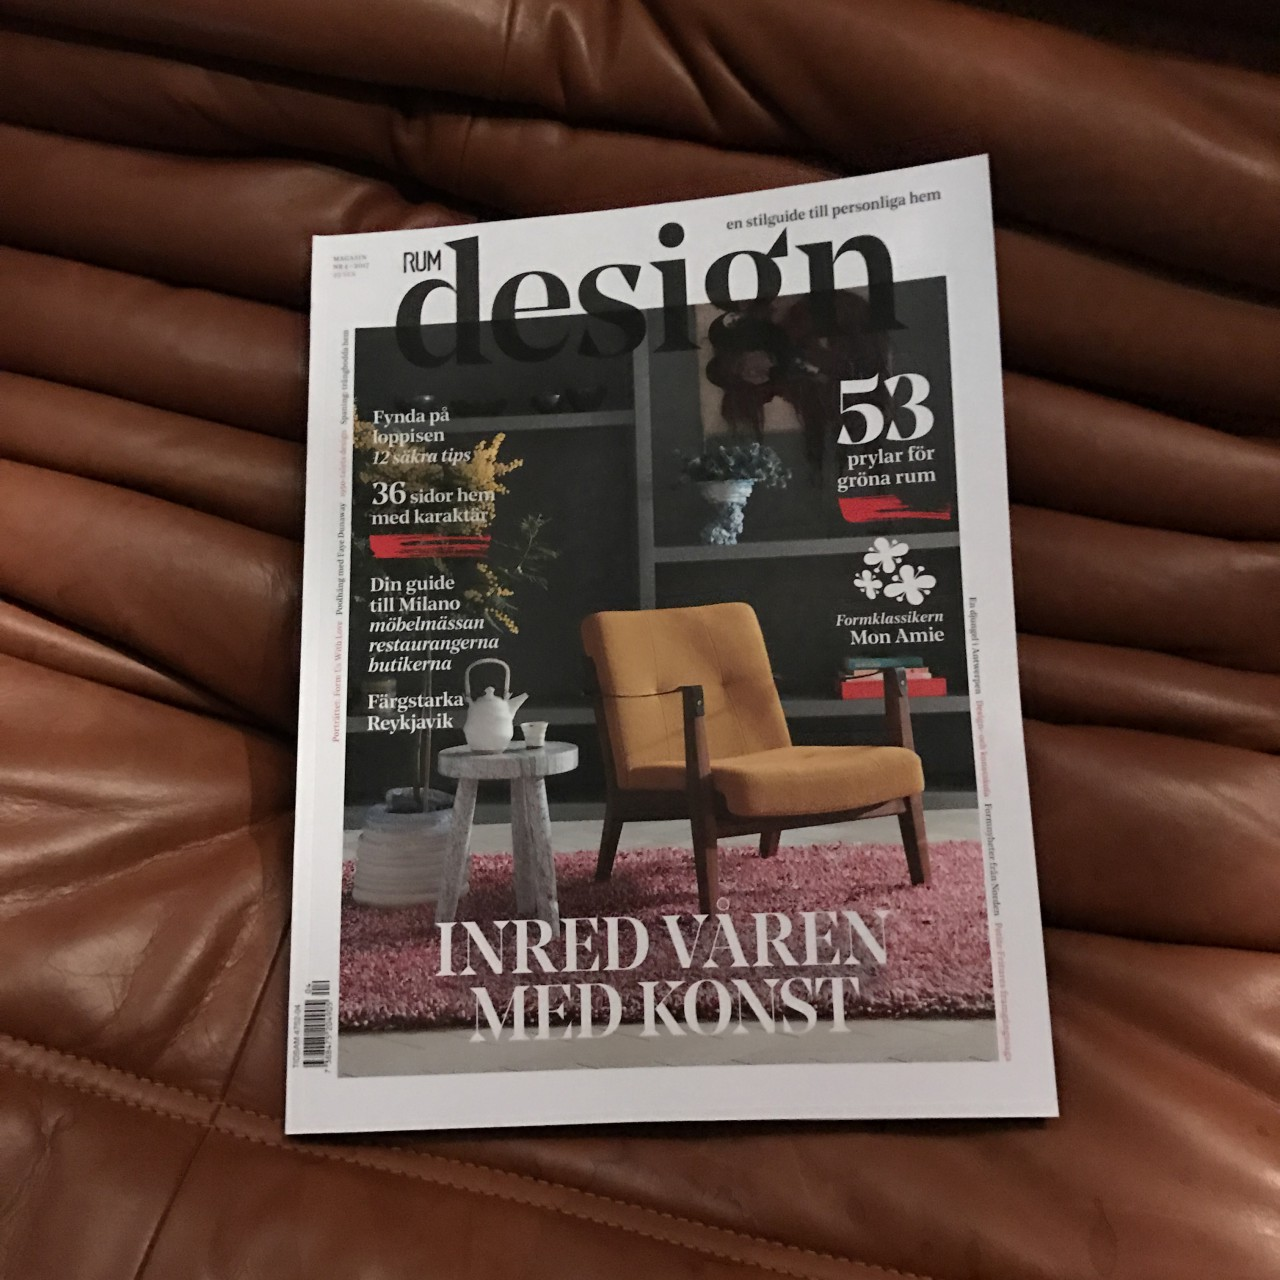 Tricks And Celebrate Design Classics Or Should Be As Well Photos From Our Buying Trips Etc Pictured Issue 4 In Stores Now